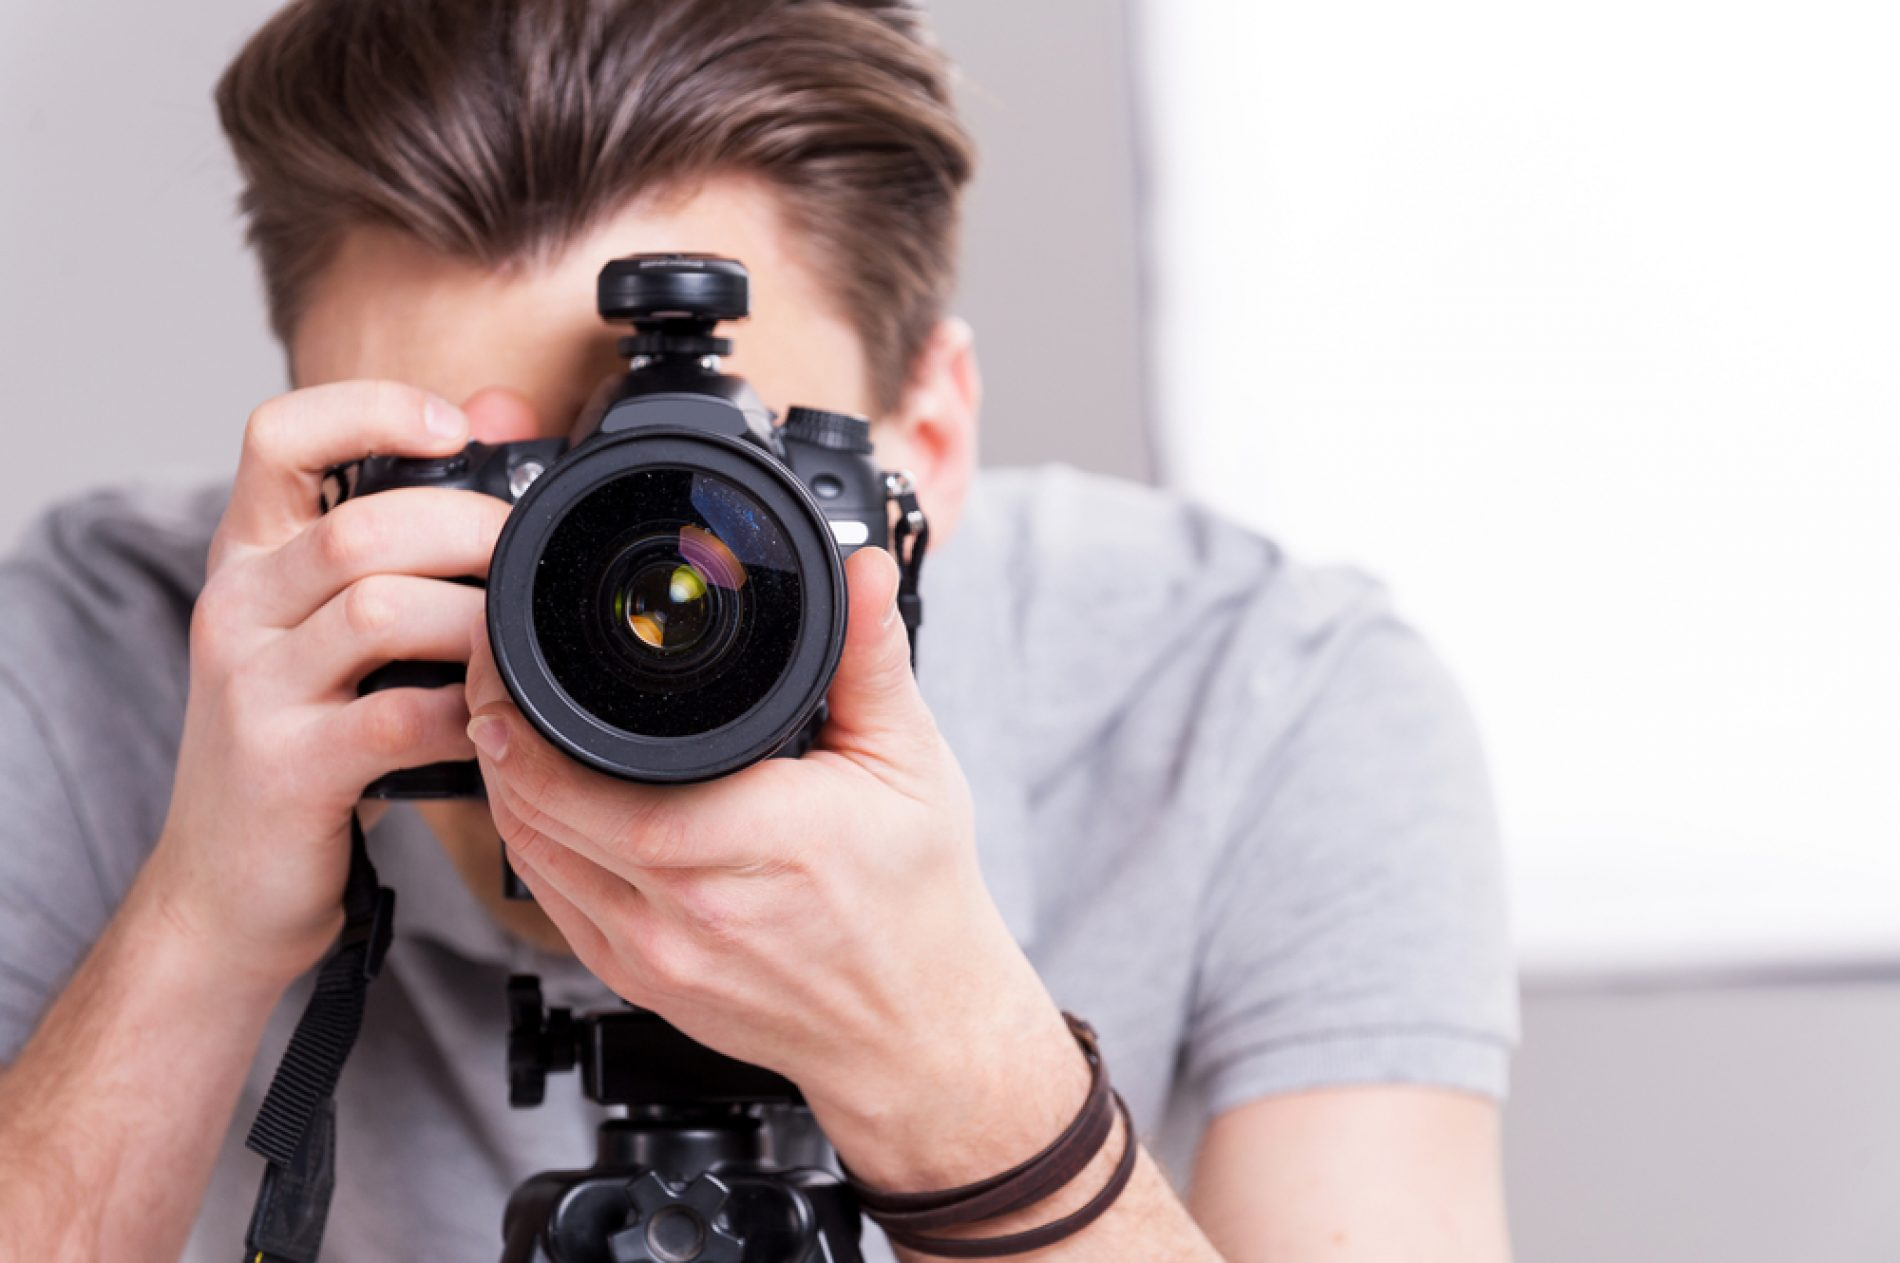 Why photography gadgets important for making your photography better?